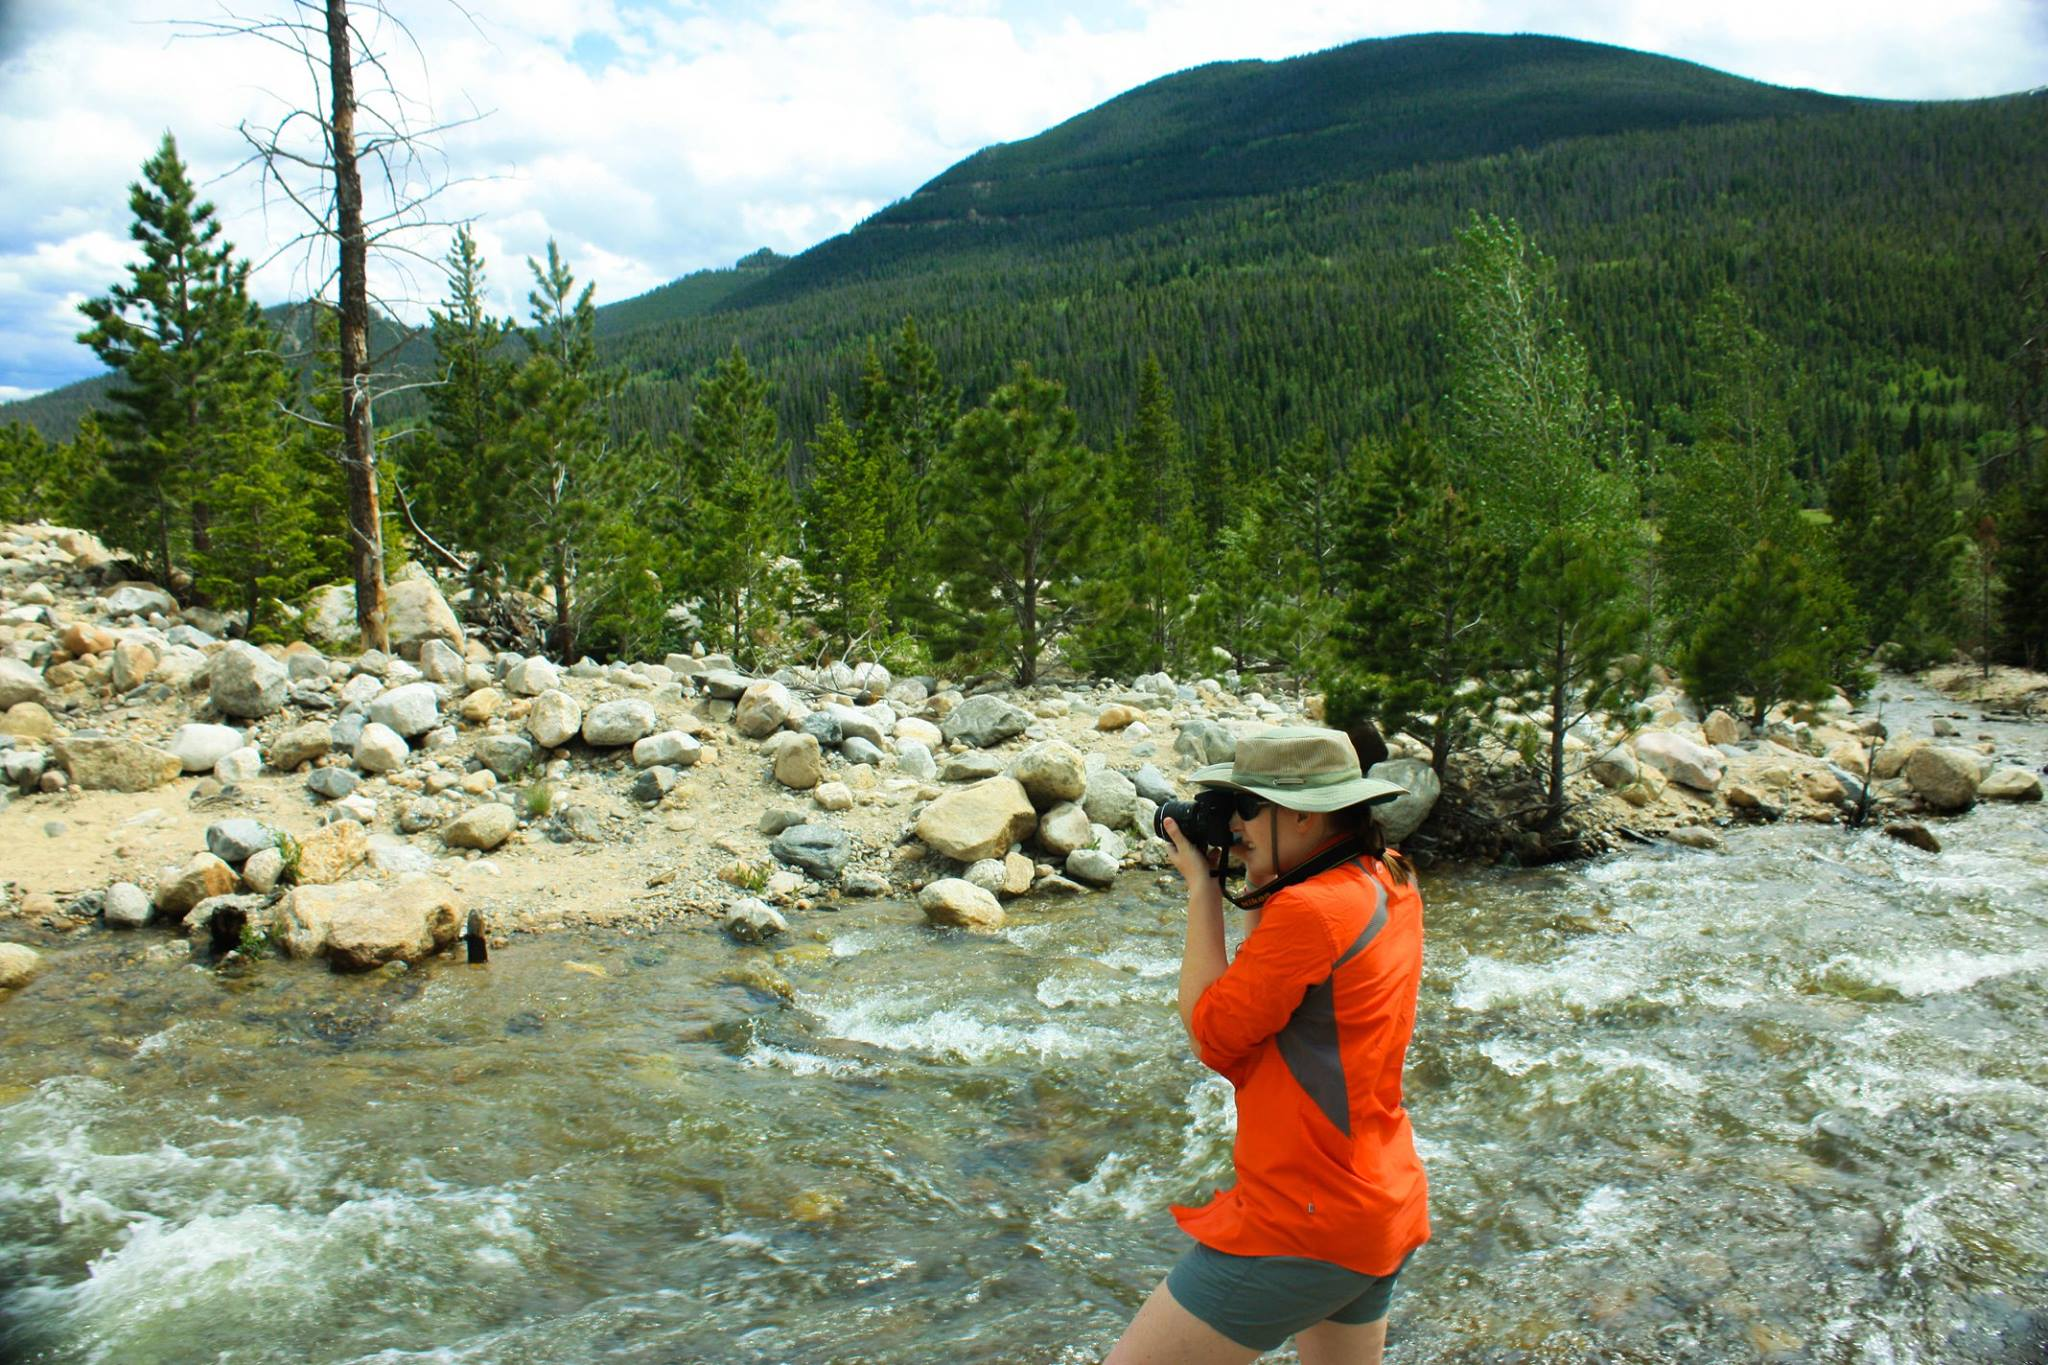 Kelsie doing some nature photography